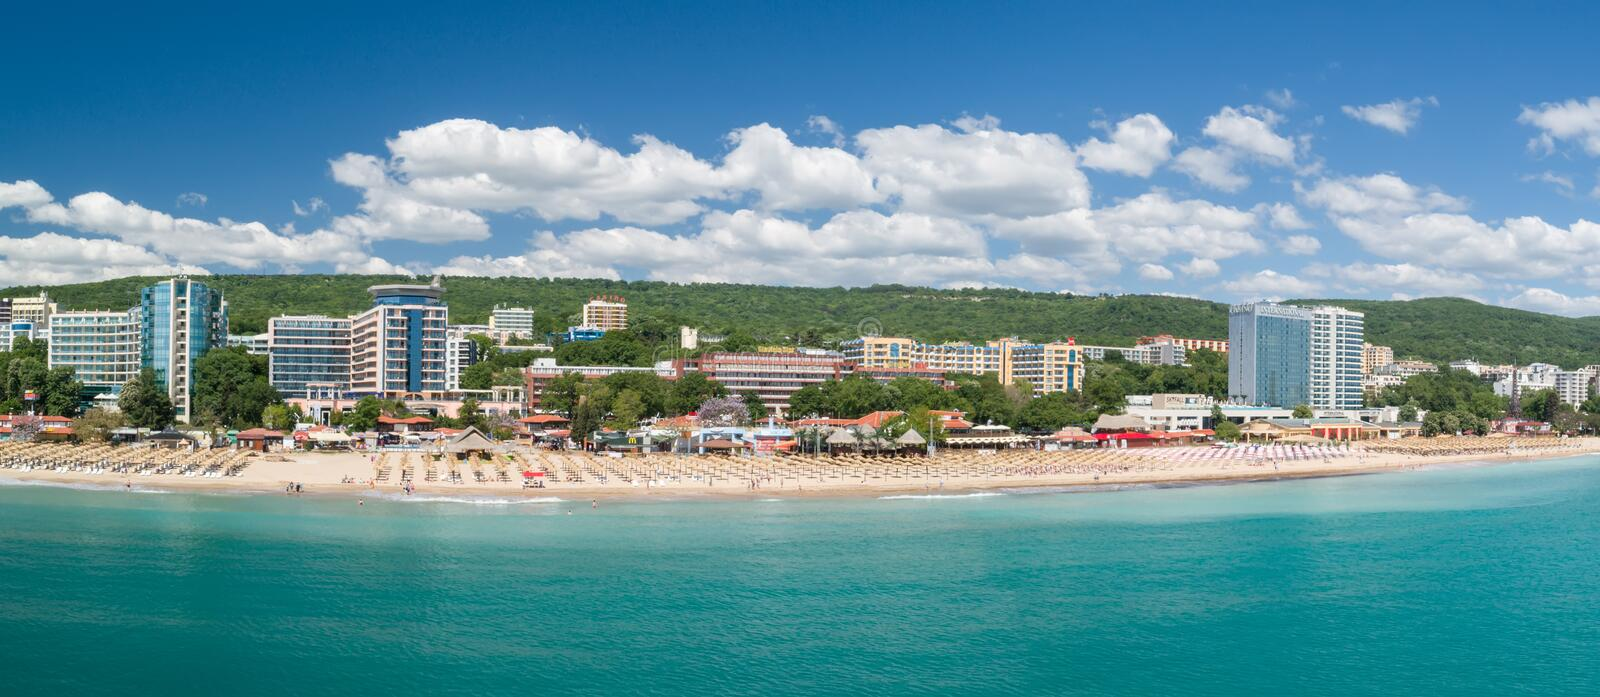 GOLDEN SANDS BEACH, VARNA, BULGARIA - MAY 19, 2017. Aerial view of the beach and hotels in Golden Sands, Zlatni Piasaci. Popular stock photo